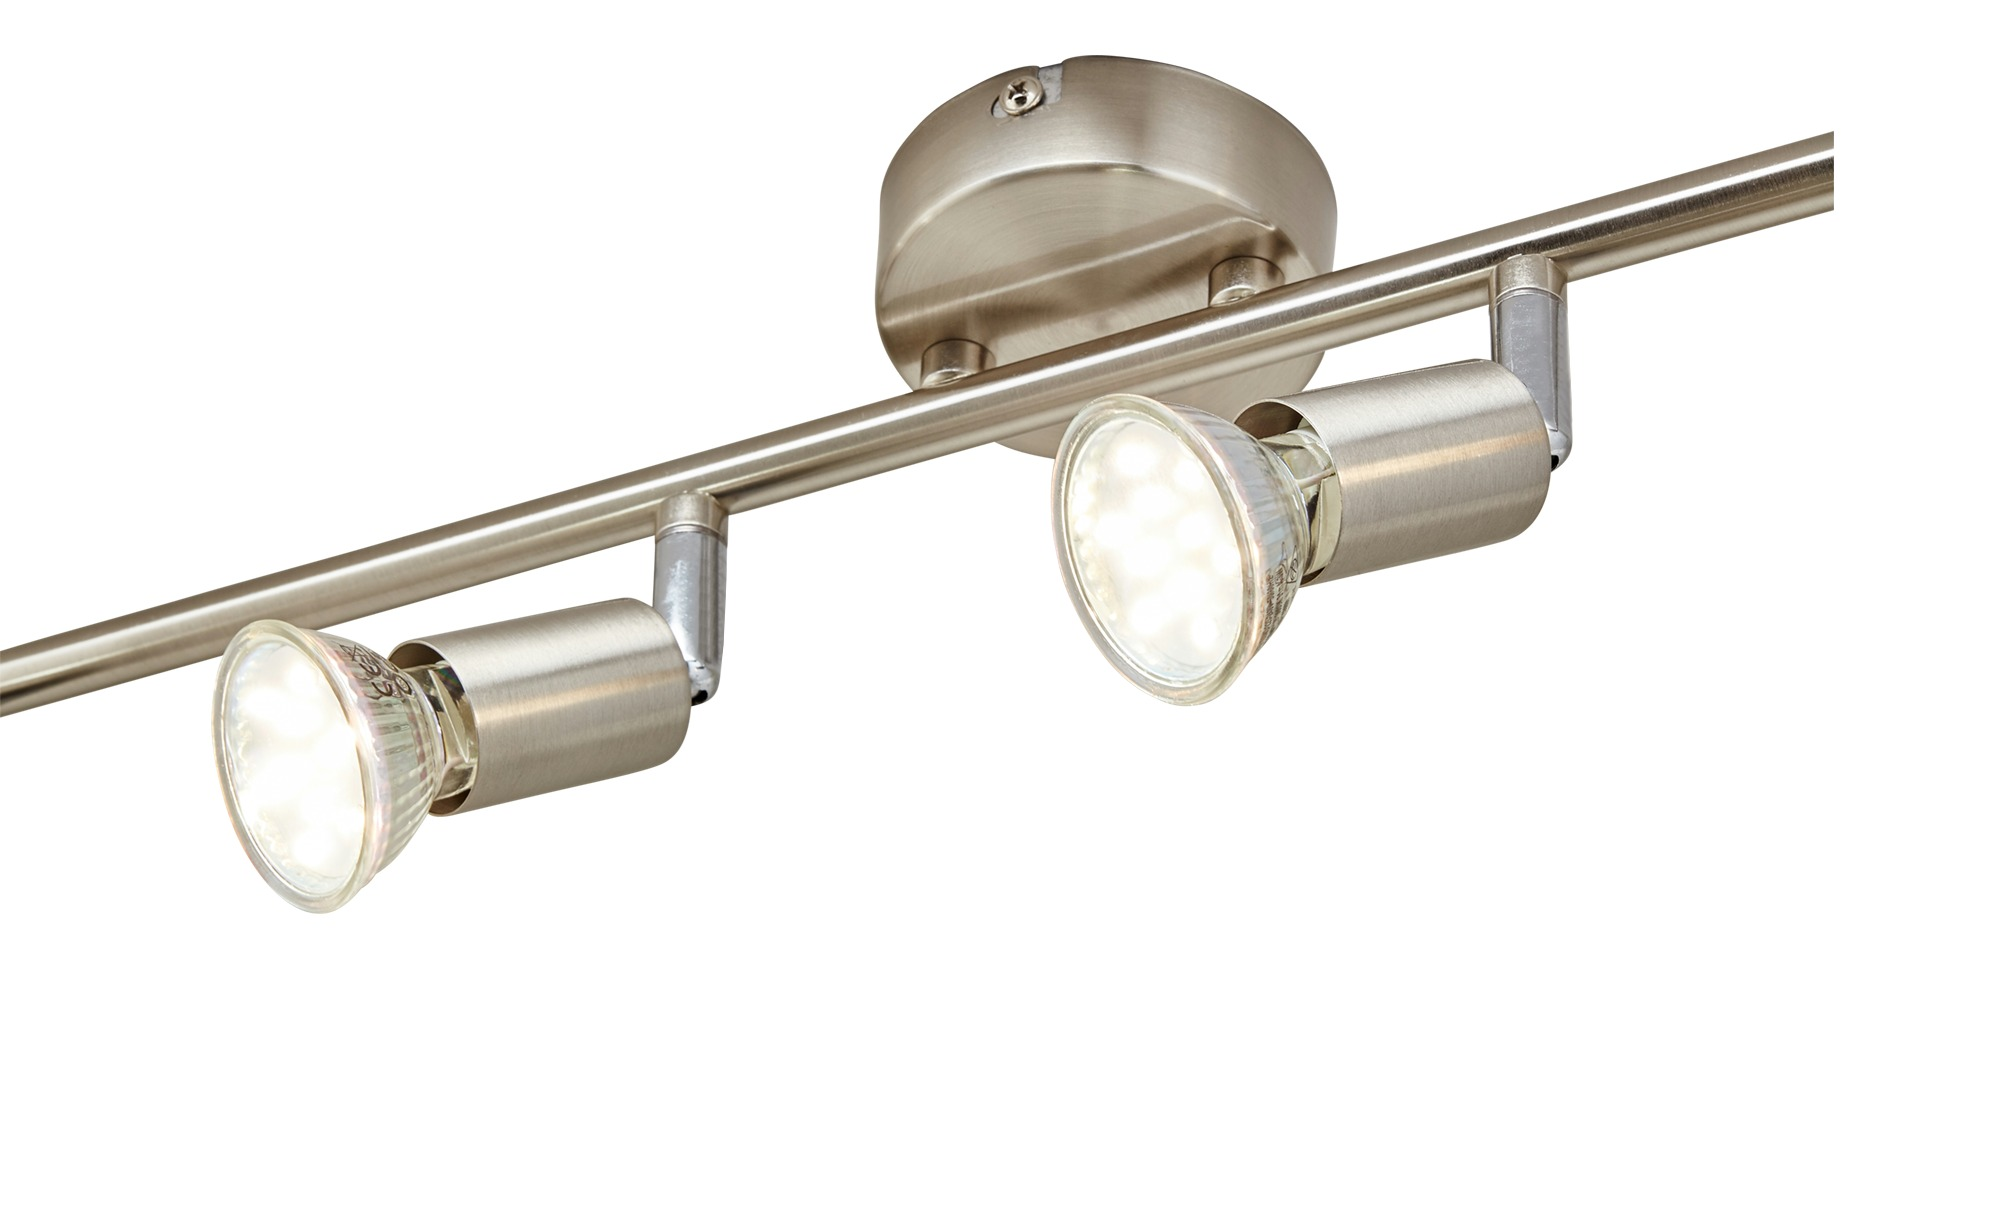 for friends LED- Deckenspot, 4-flammig, nickel matt ¦ silber ¦ Maße (cm): B: 8 H: 15,5 Lampen & Leuchten > LED-Leuchten > LED-Strahler & Spots - Höffner